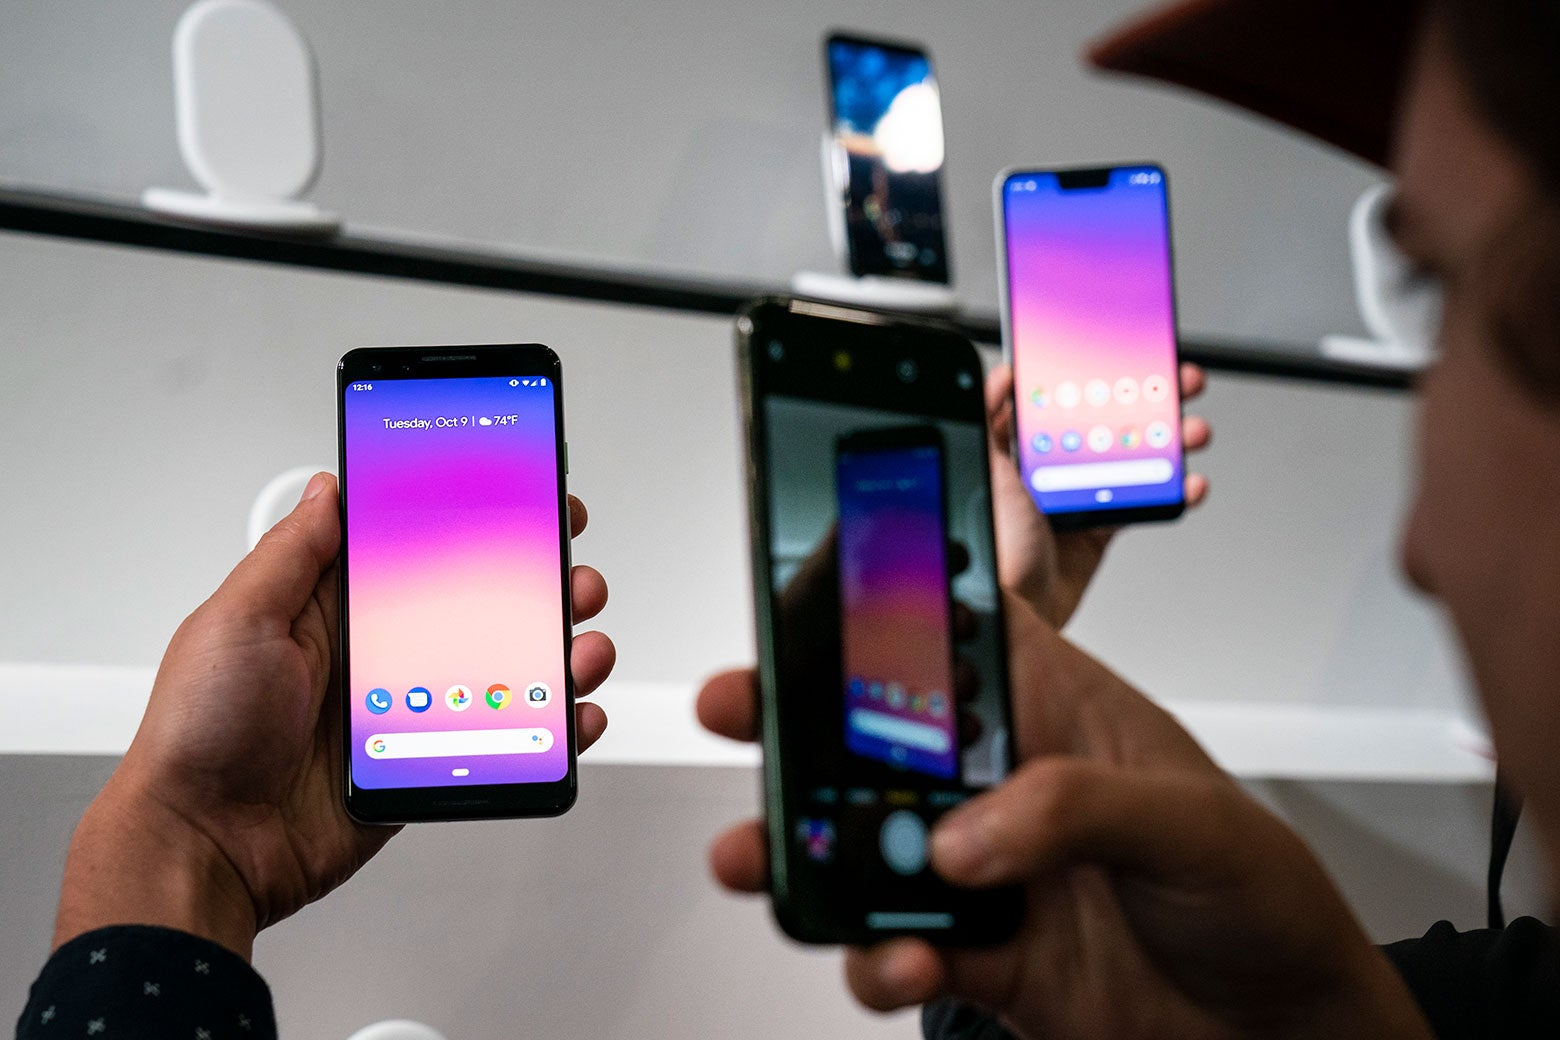 A person taking a photo of the Google Pixel 3 smartphone.